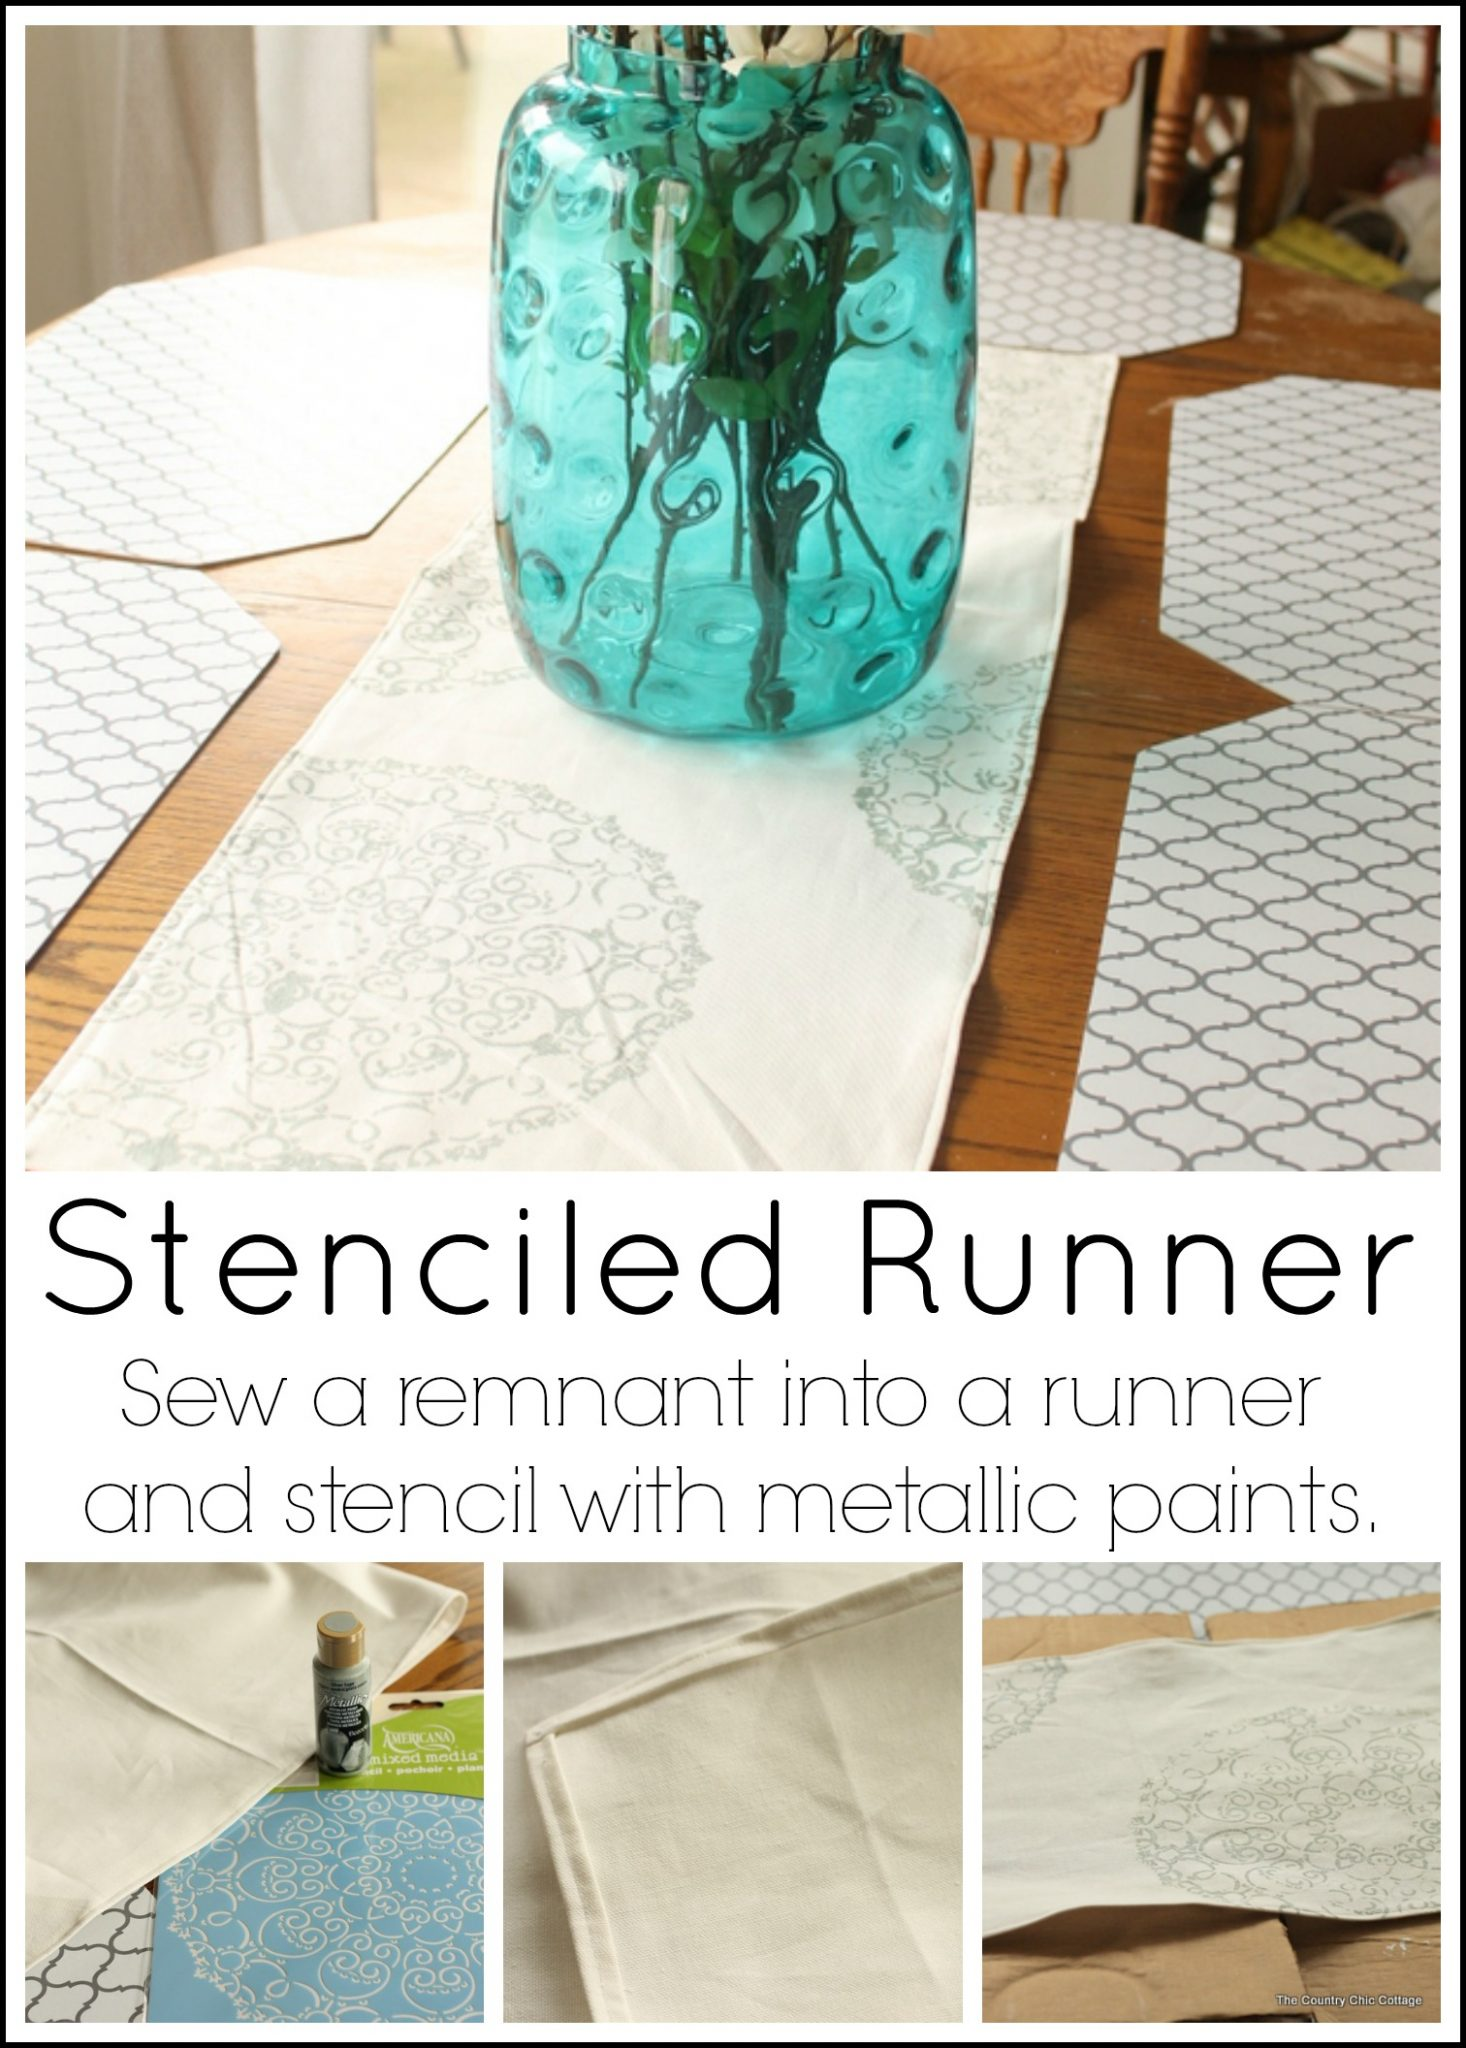 Make a stenciled runner for your table in a few simple steps!